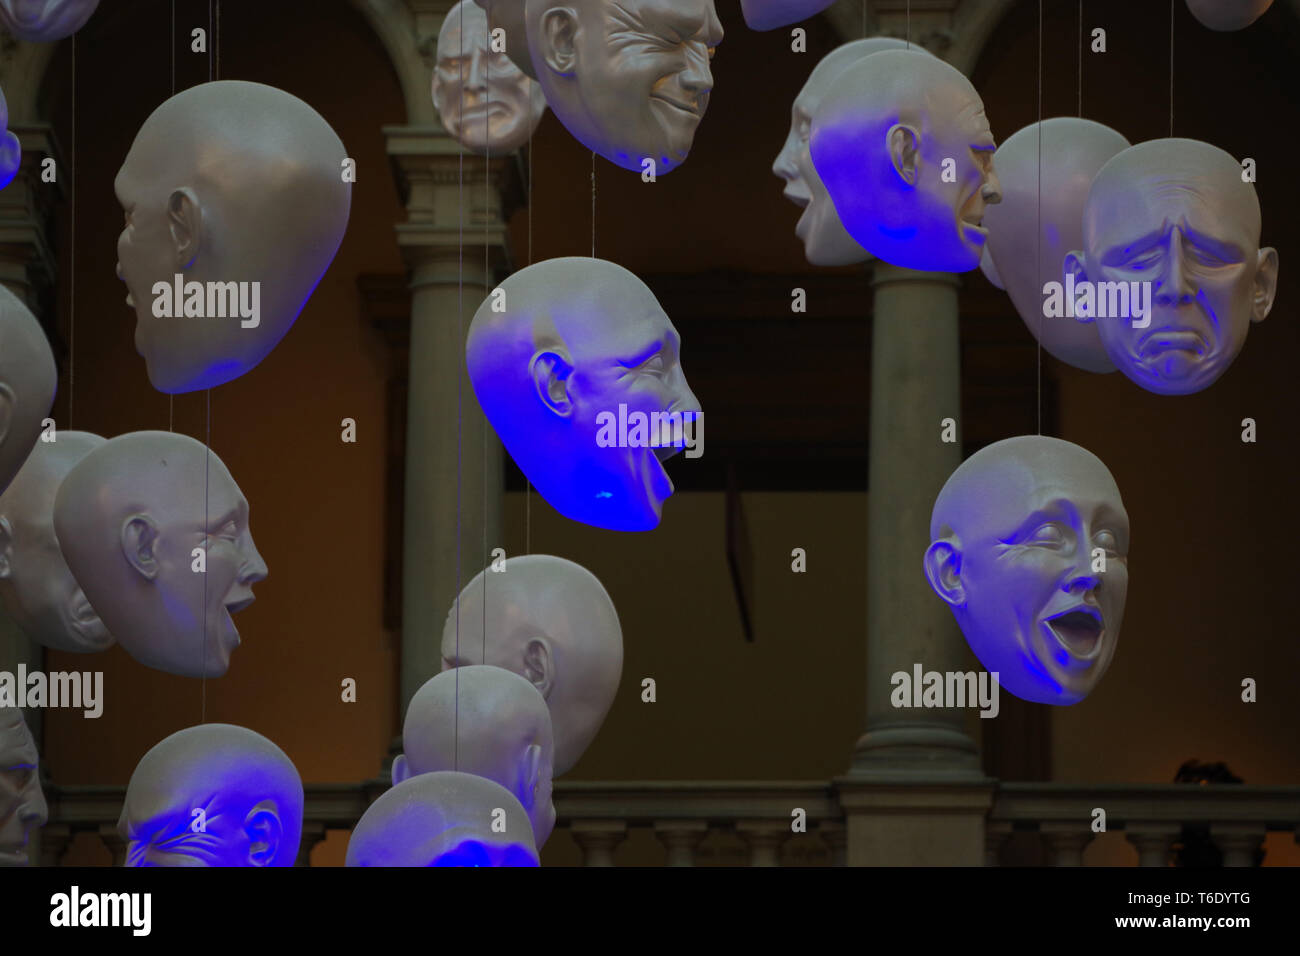 Hanging Heads. Sophie Cave was the creator of hanging heads installation at Kelvingrove Art Gallery and Museum. - Stock Image